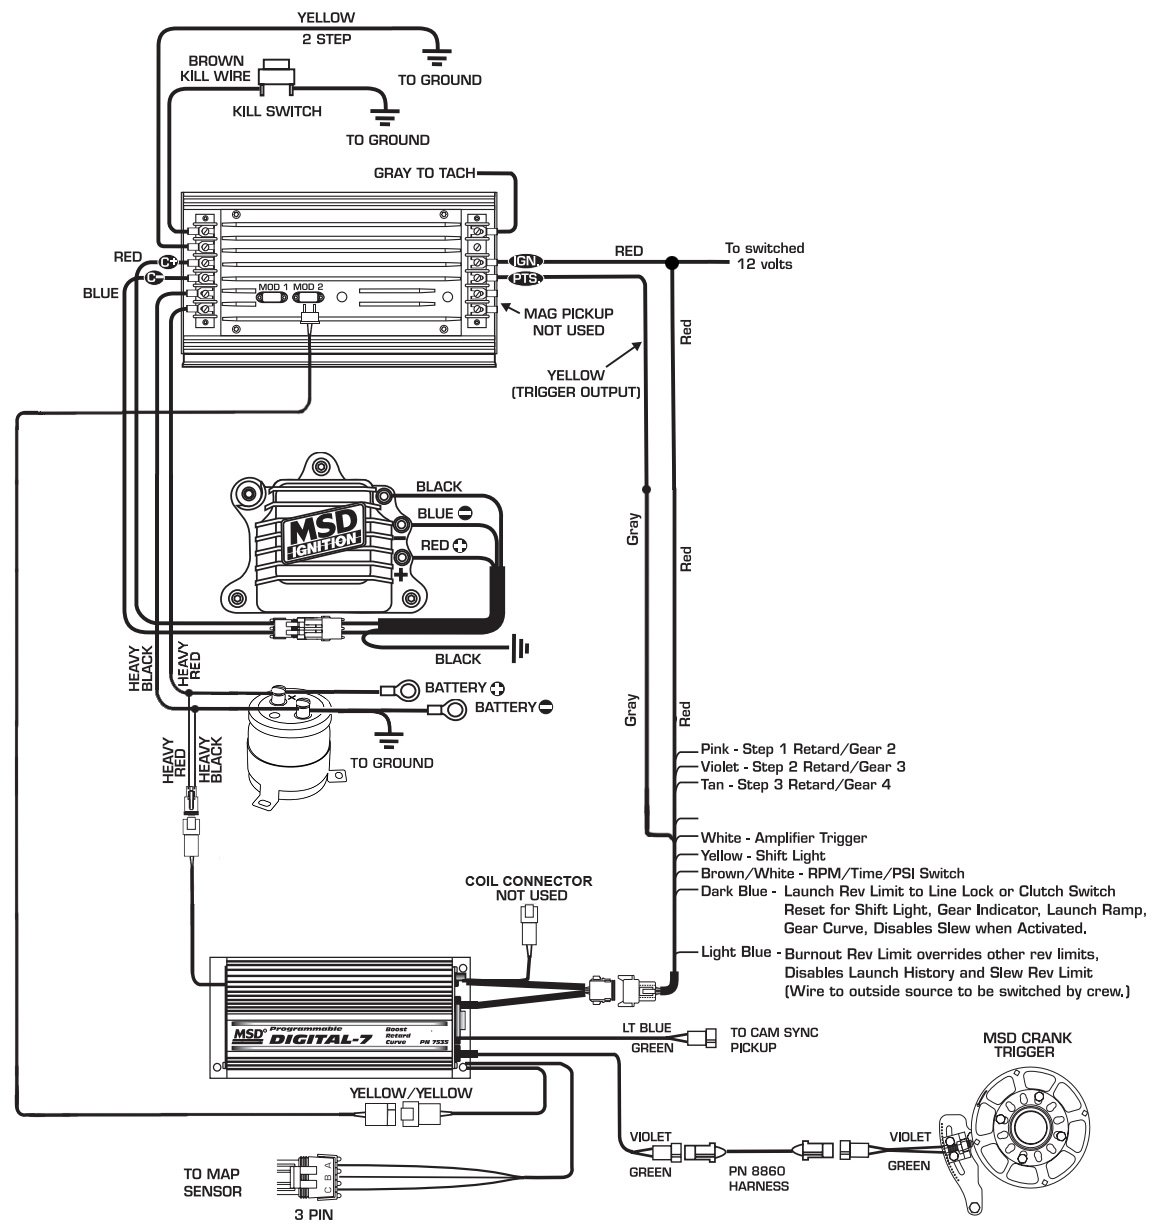 Toyota Sequoia Power Antenna Wire Diagram 2000 Ford F 150 Pcm Wiring Fine Composition Electrical System Blog Diagrams And Drawings Digital 7 7531